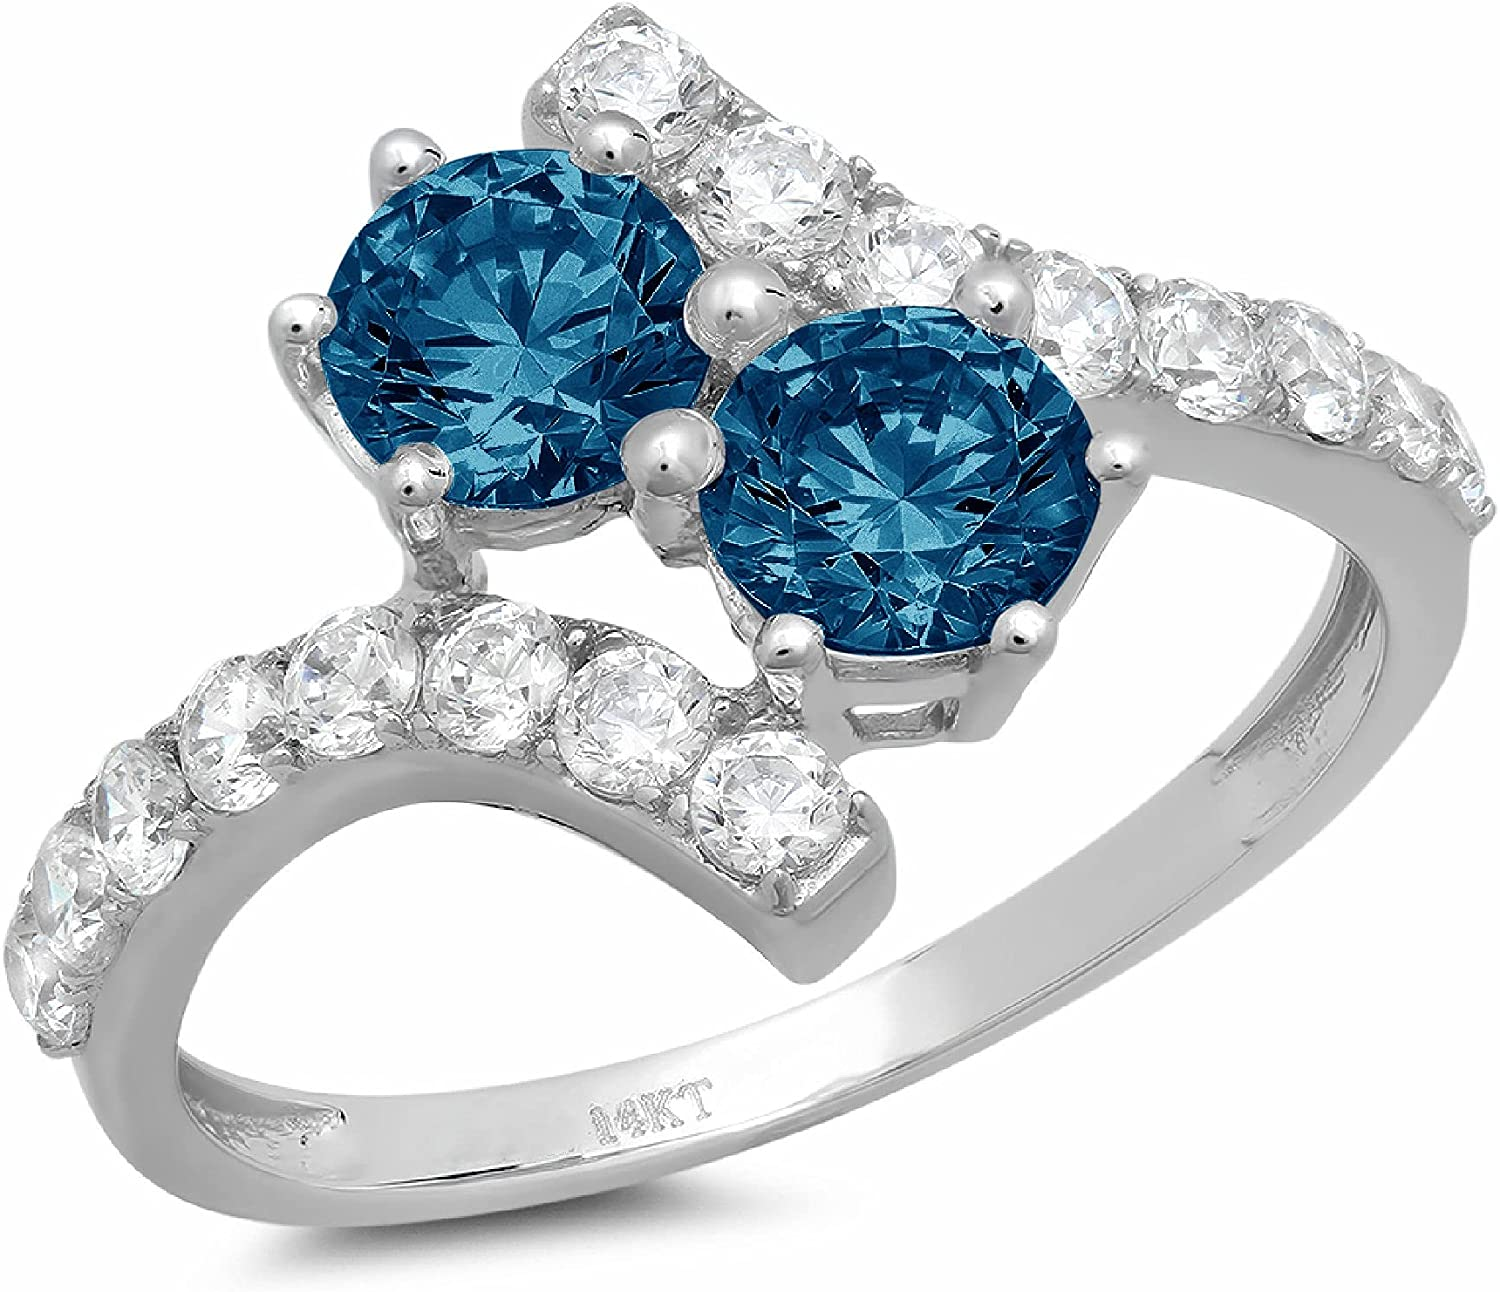 1.98 ct Round Cut 2 stone love Solitaire Genuine Flawless Natural London Blue Topaz Gemstone Engagement Promise Statement Anniversary Bridal Wedding Accent Ring Solid 18K White Gold